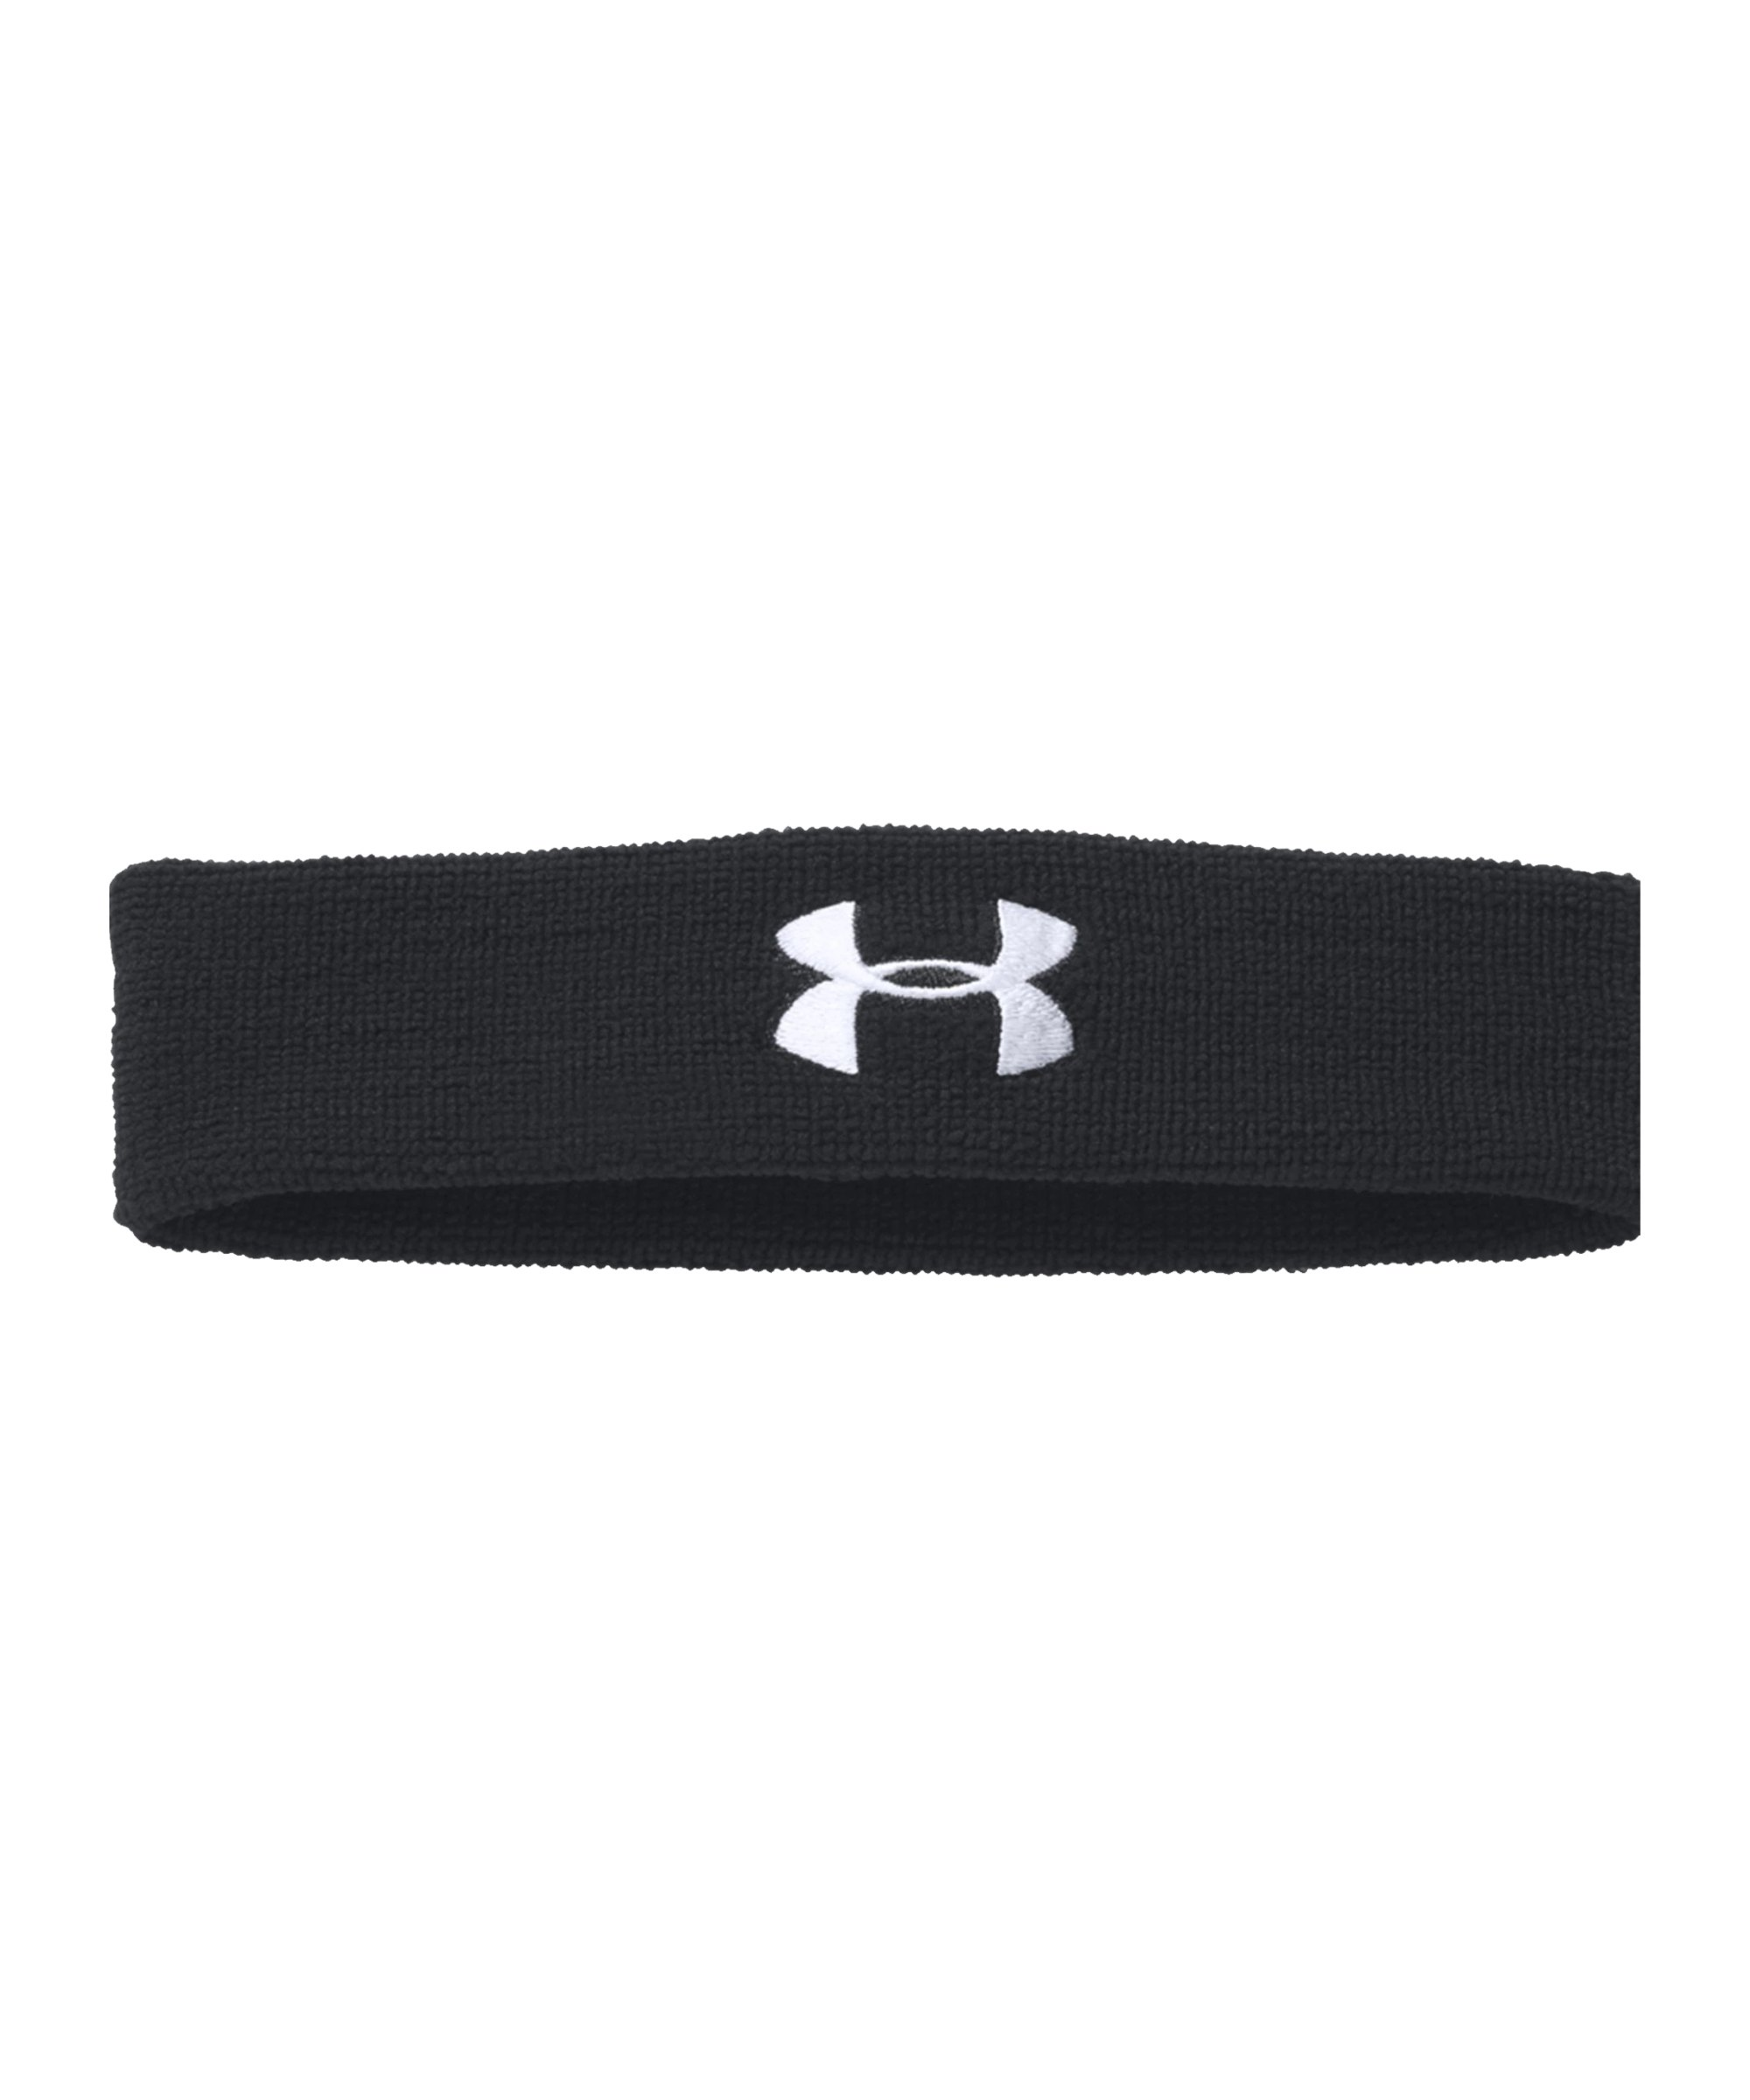 Under Armour Performance Stirnband Schwarz F001 - schwarz